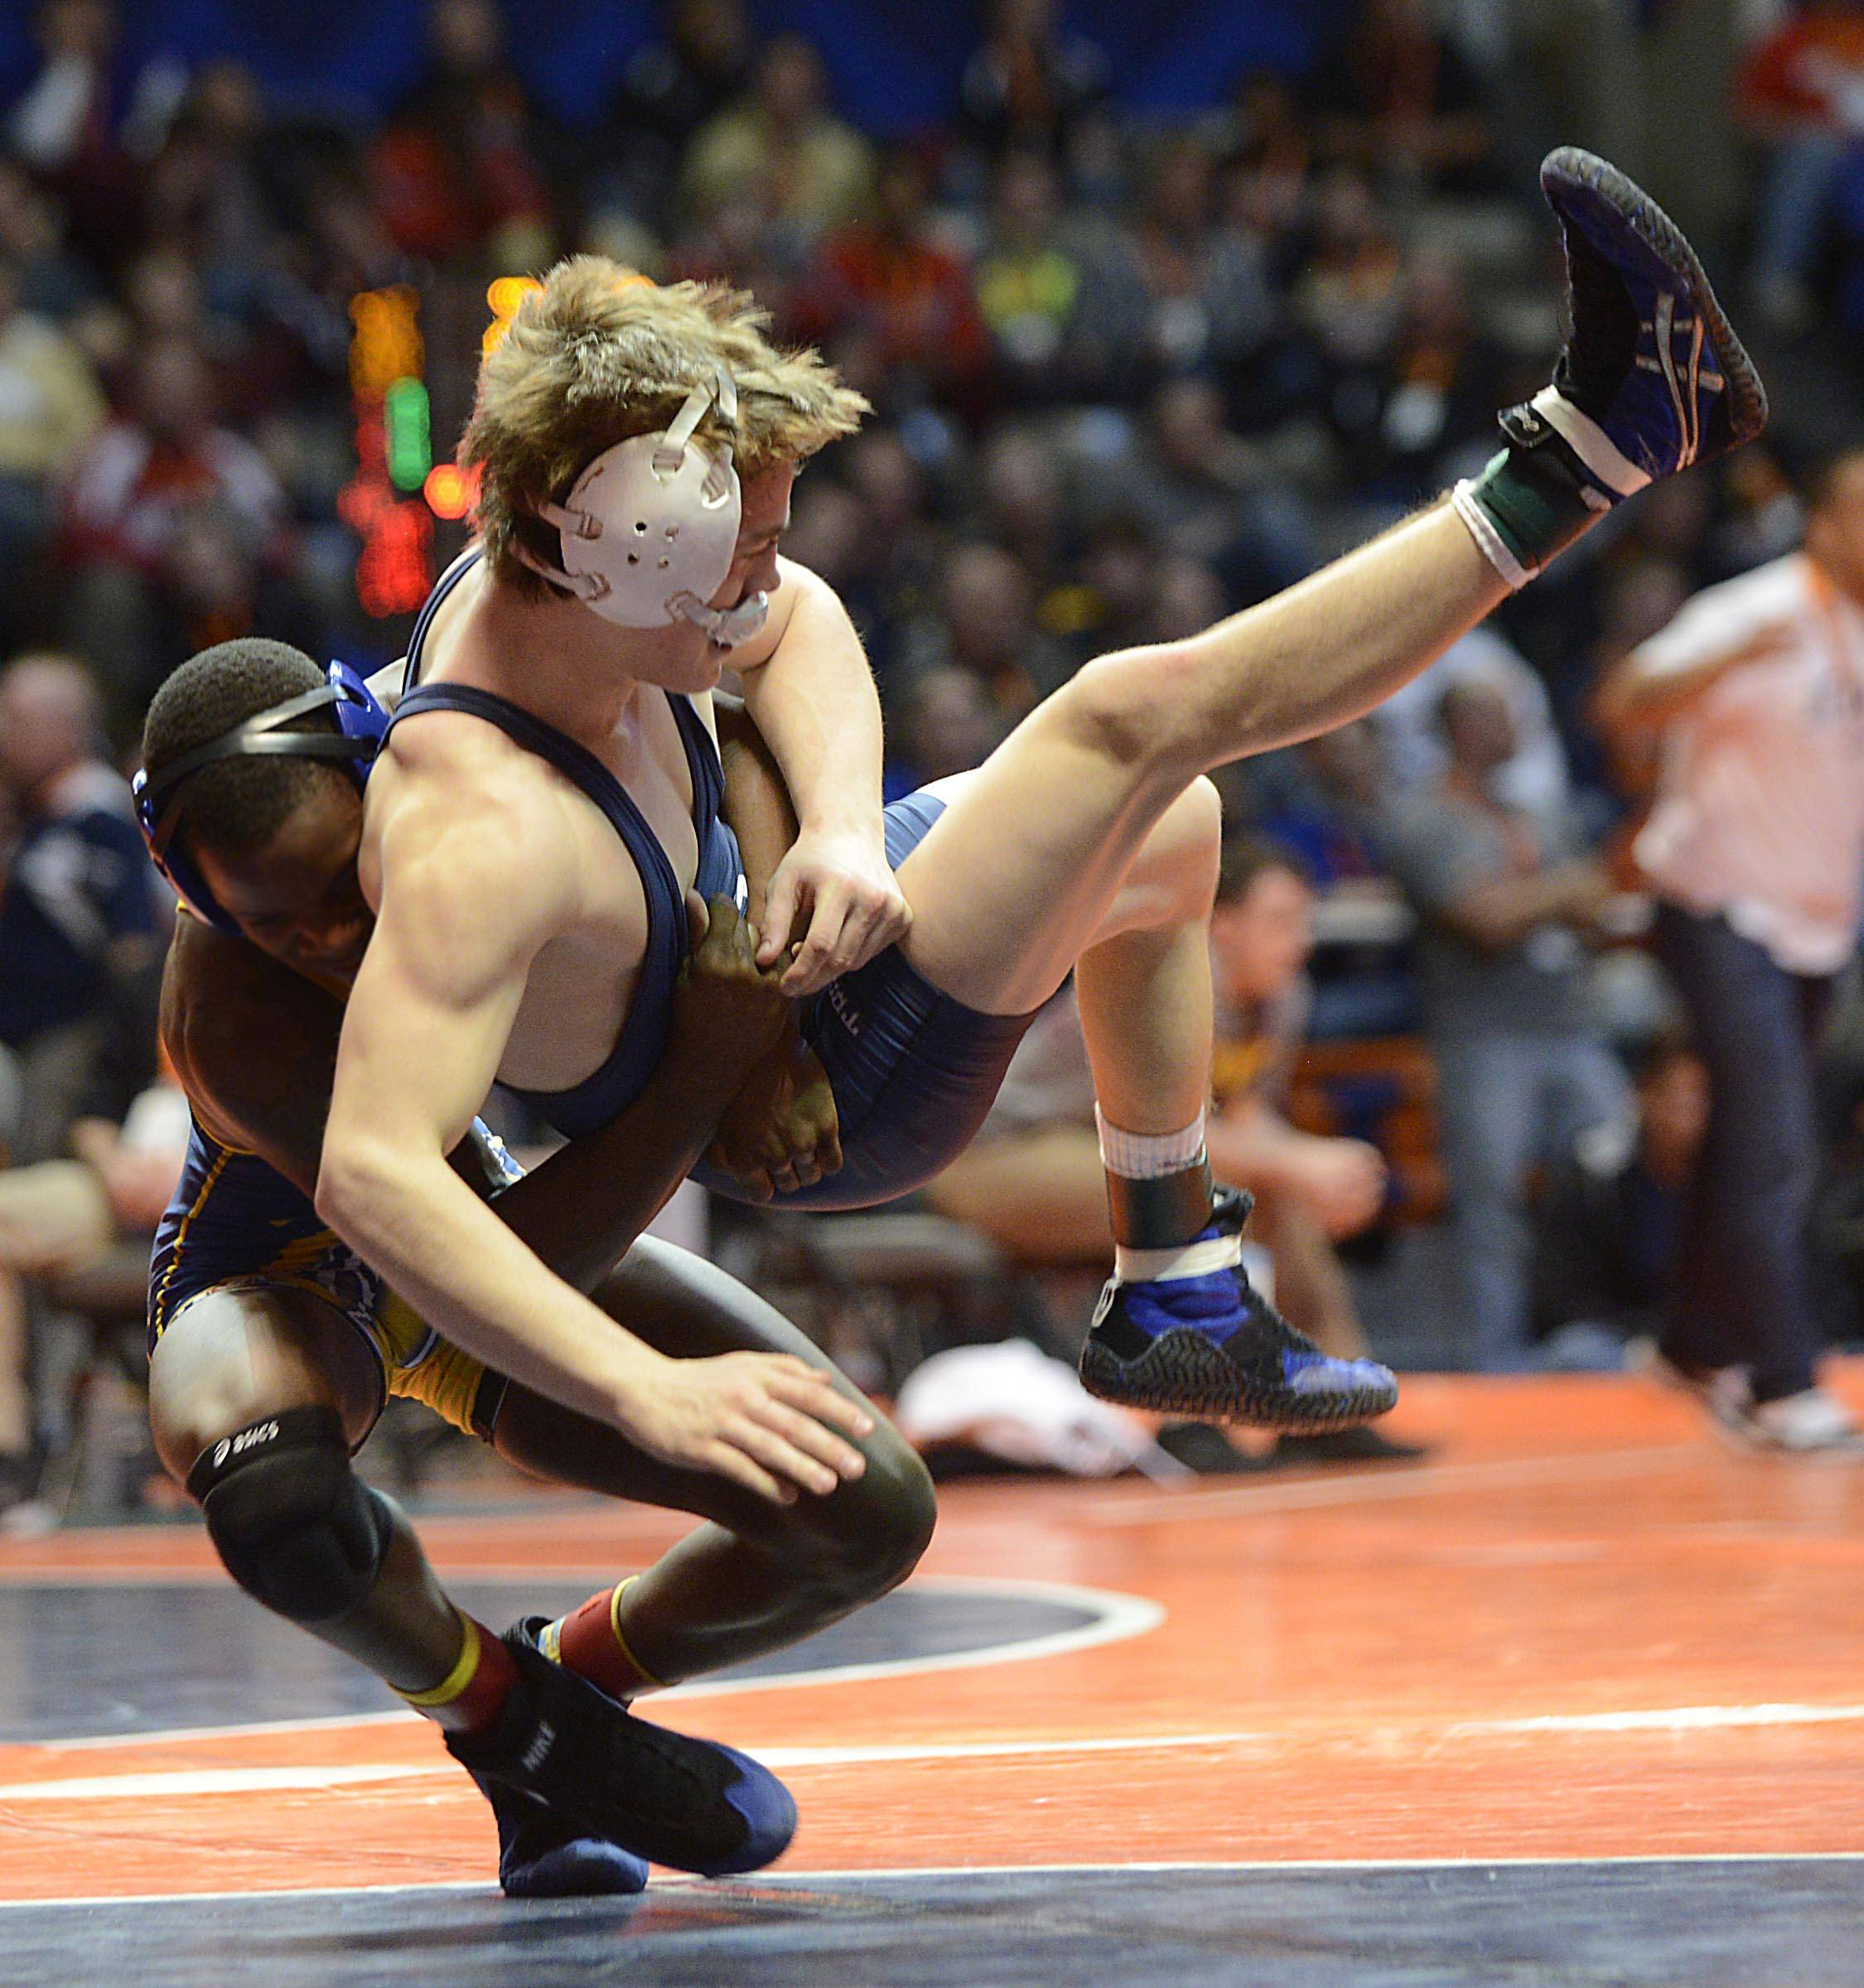 Michael Cullen of Cary-Grove High School is thrown by Kris Williams of Thornwood High School Friday in the 120-pound weight class semifinals of the wrestling IHSA Class 3A state tournament at State Farm Center in Champaign.